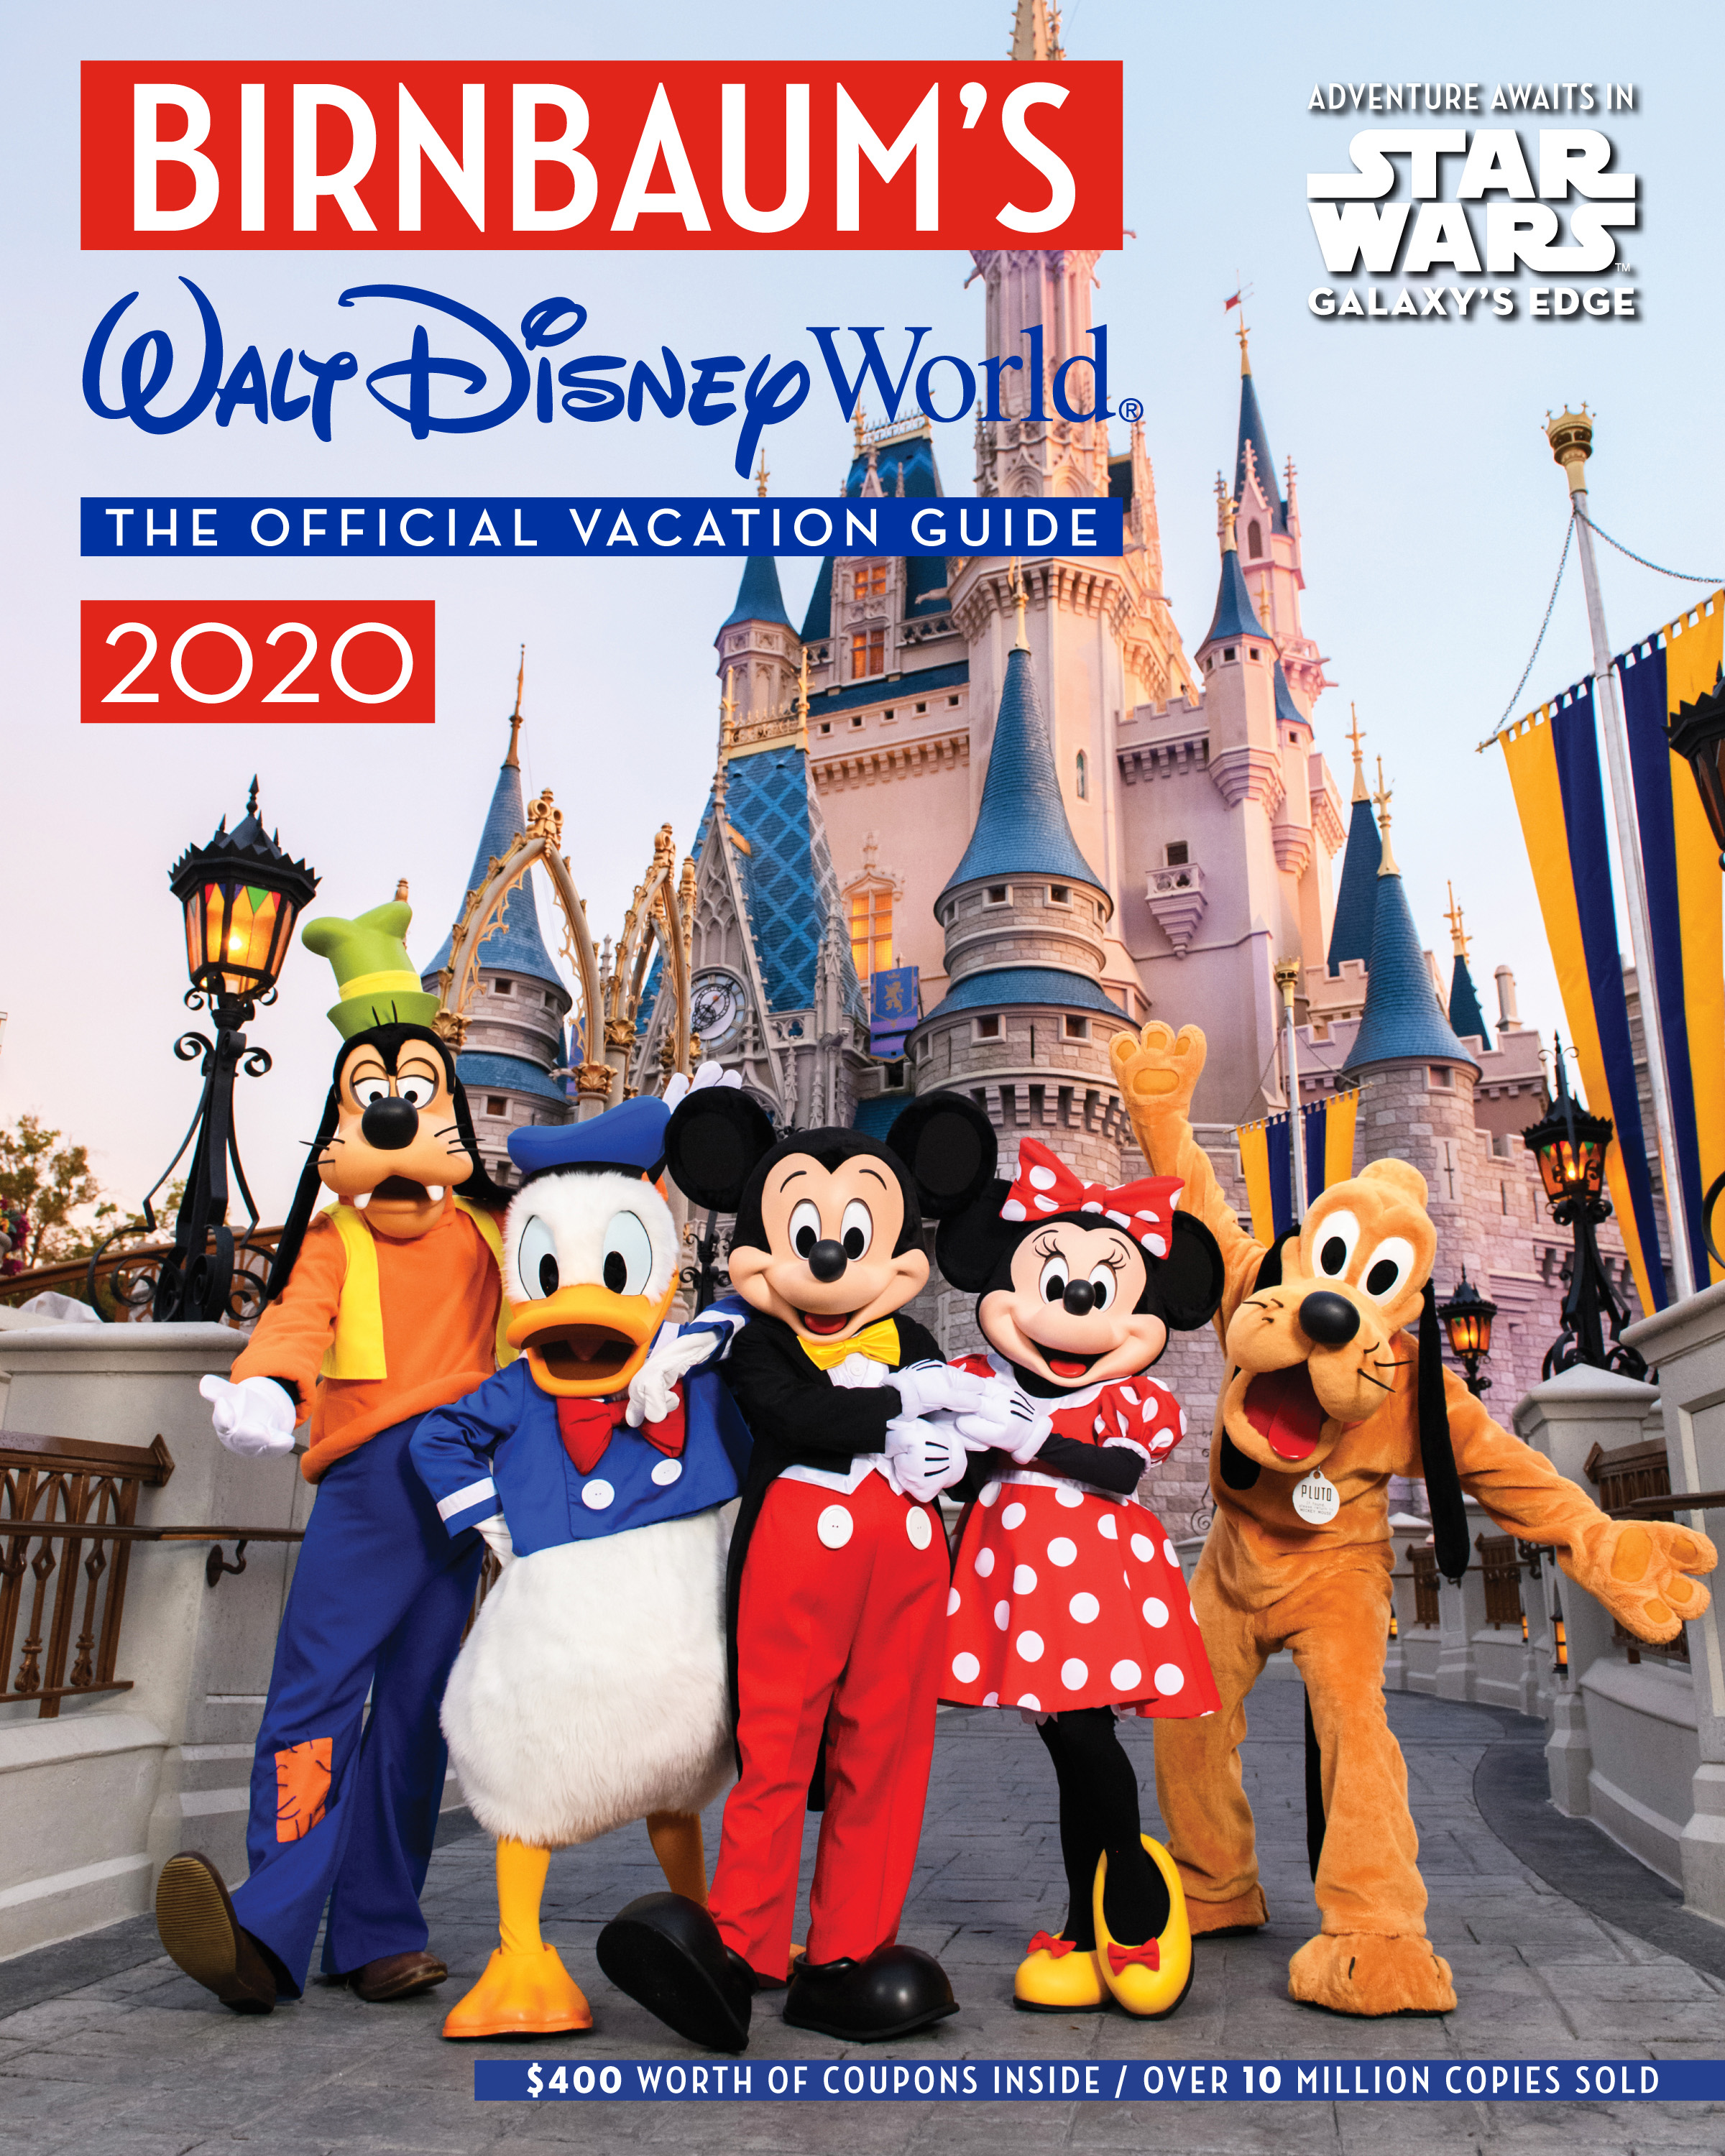 Events At Disney World 2020.Birnbaum S 2020 Walt Disney World